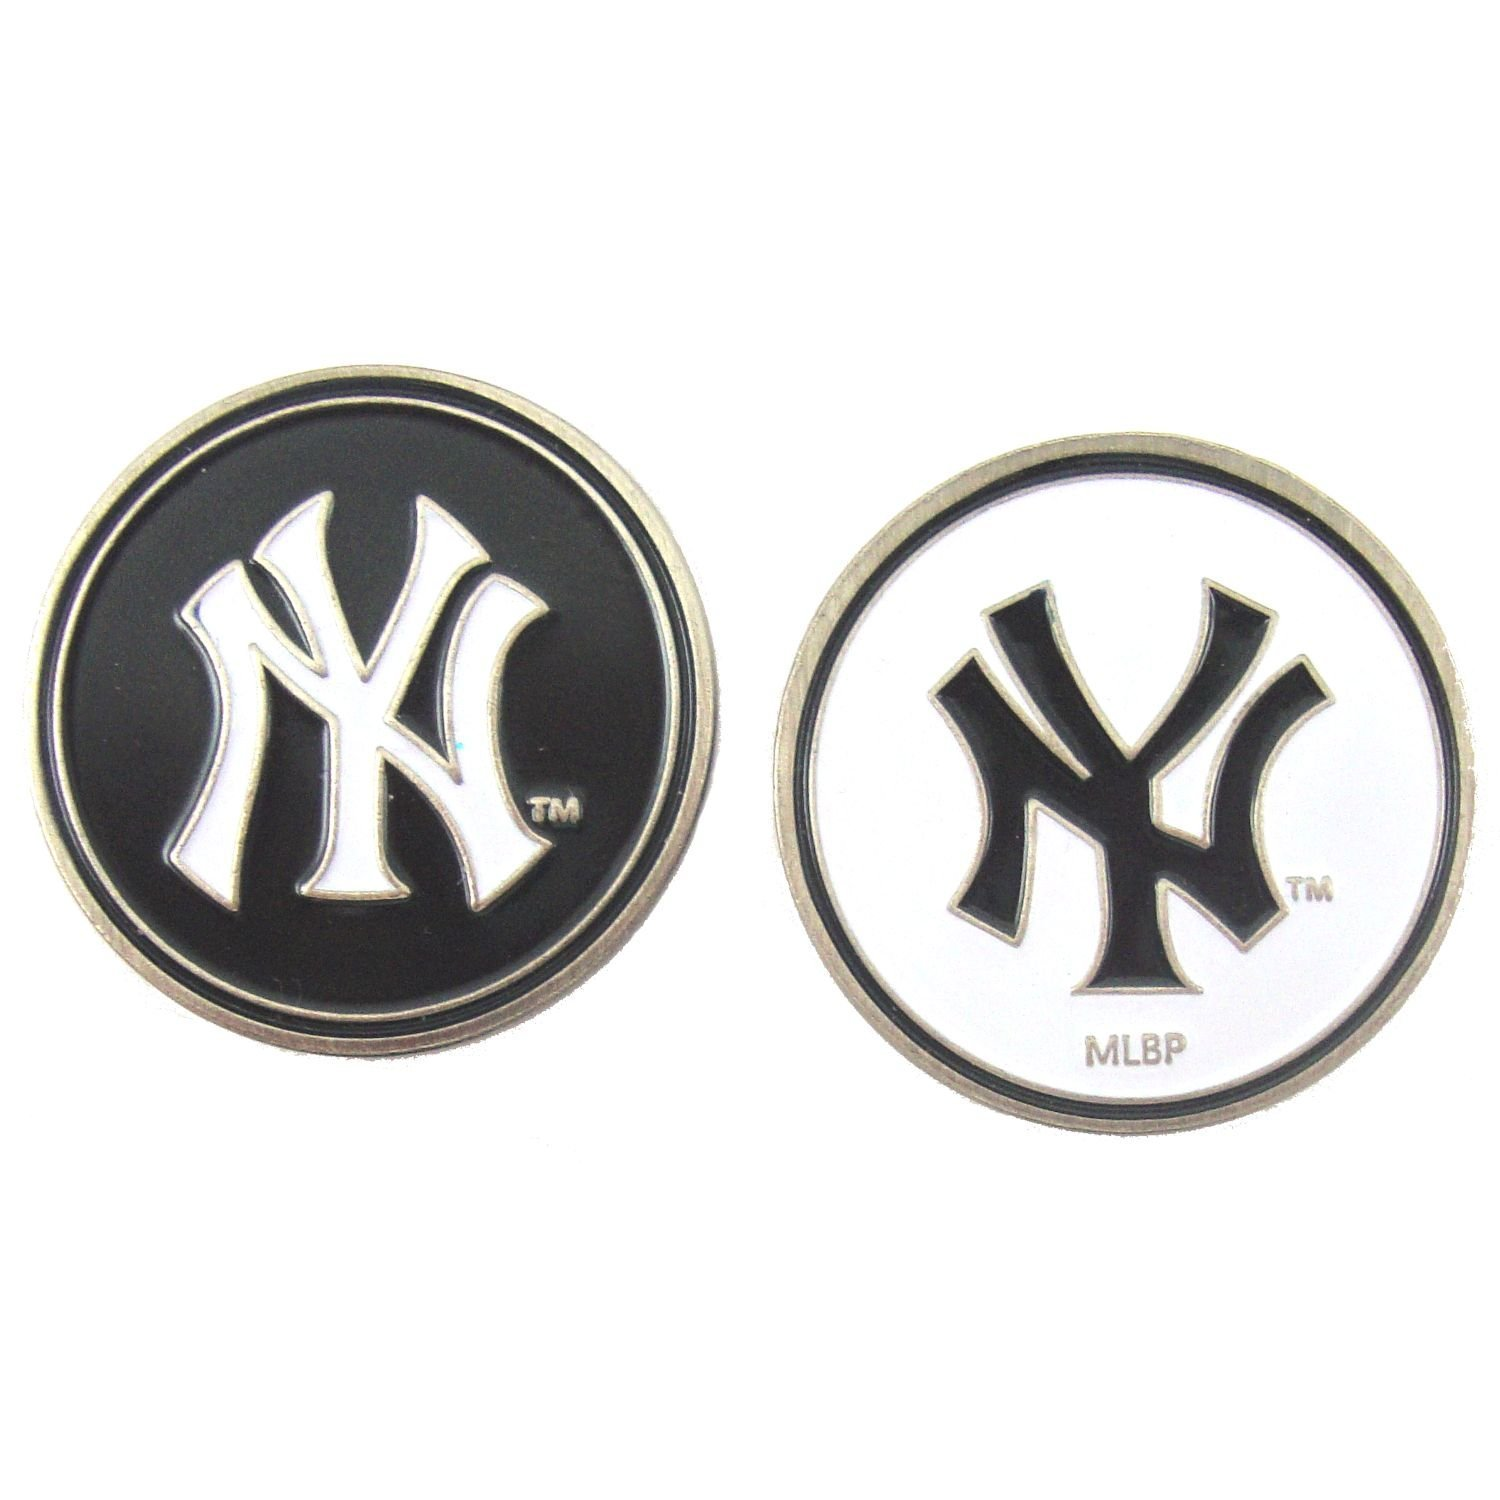 6fa9ac3fafbb1a Amazon.com : New York Yankees Double Sided Golf Ball Marker Only : Golf  Accessories : Sports & Outdoors